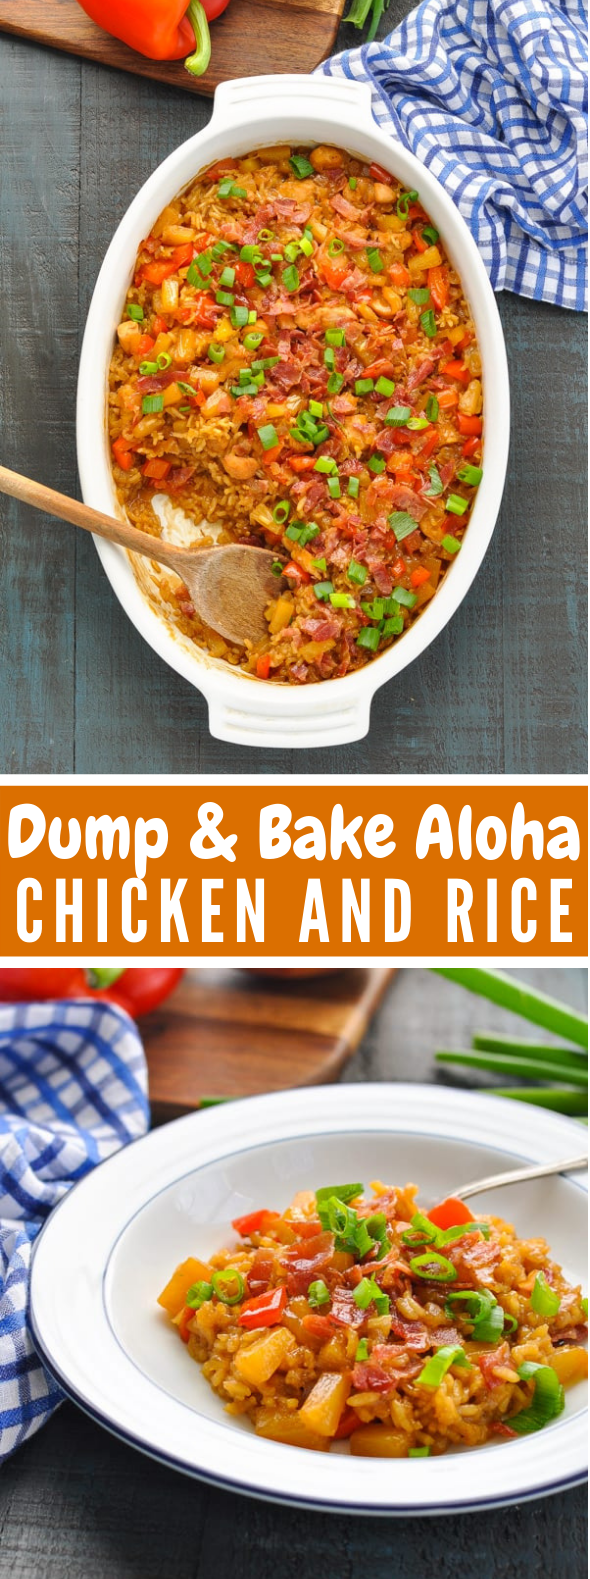 Dump-and-Bake Aloha Chicken and Rice #dinner #bacon